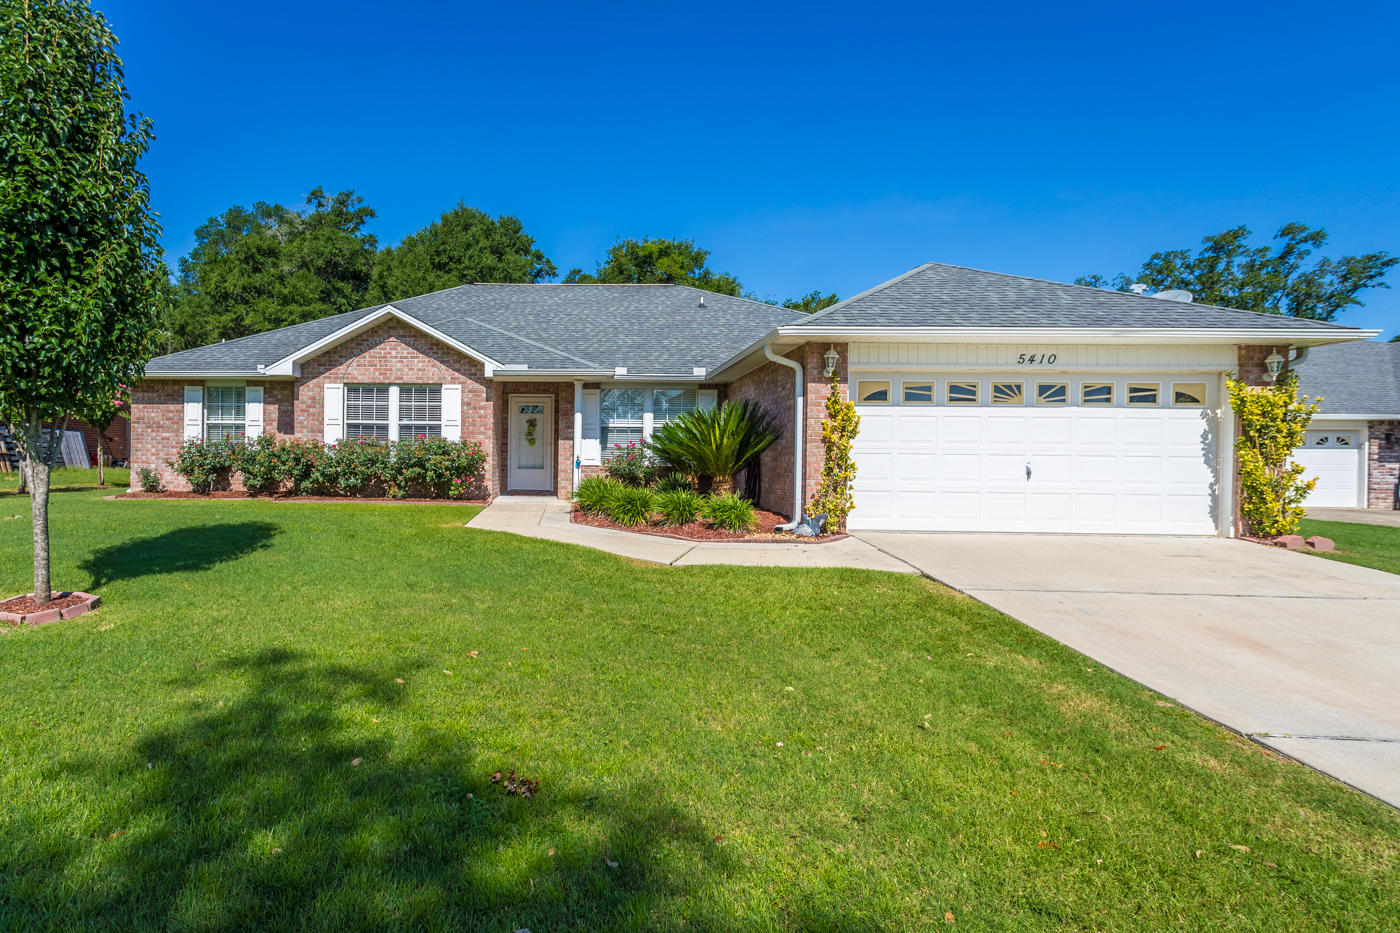 Photo of home for sale at 5410 Lee Farm, Crestview FL